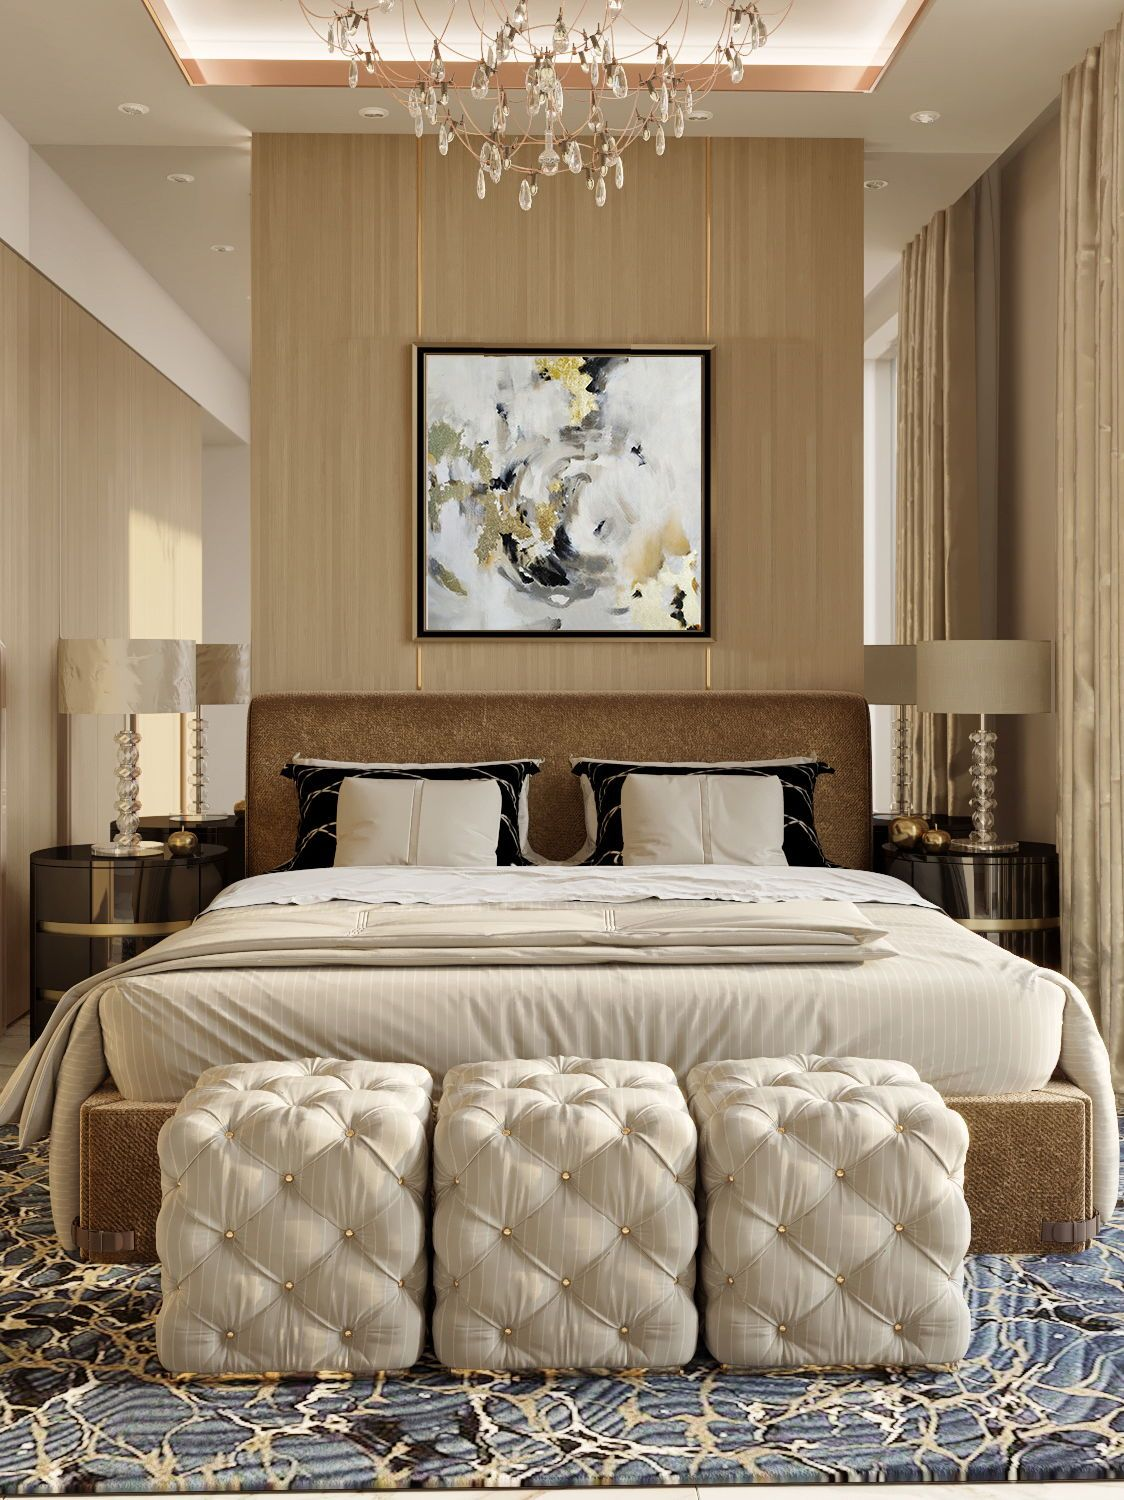 Interior Art Painting Decor For Bedroom Interior Master Bedroom Interior Design Interior Design Bedroom Interior Design